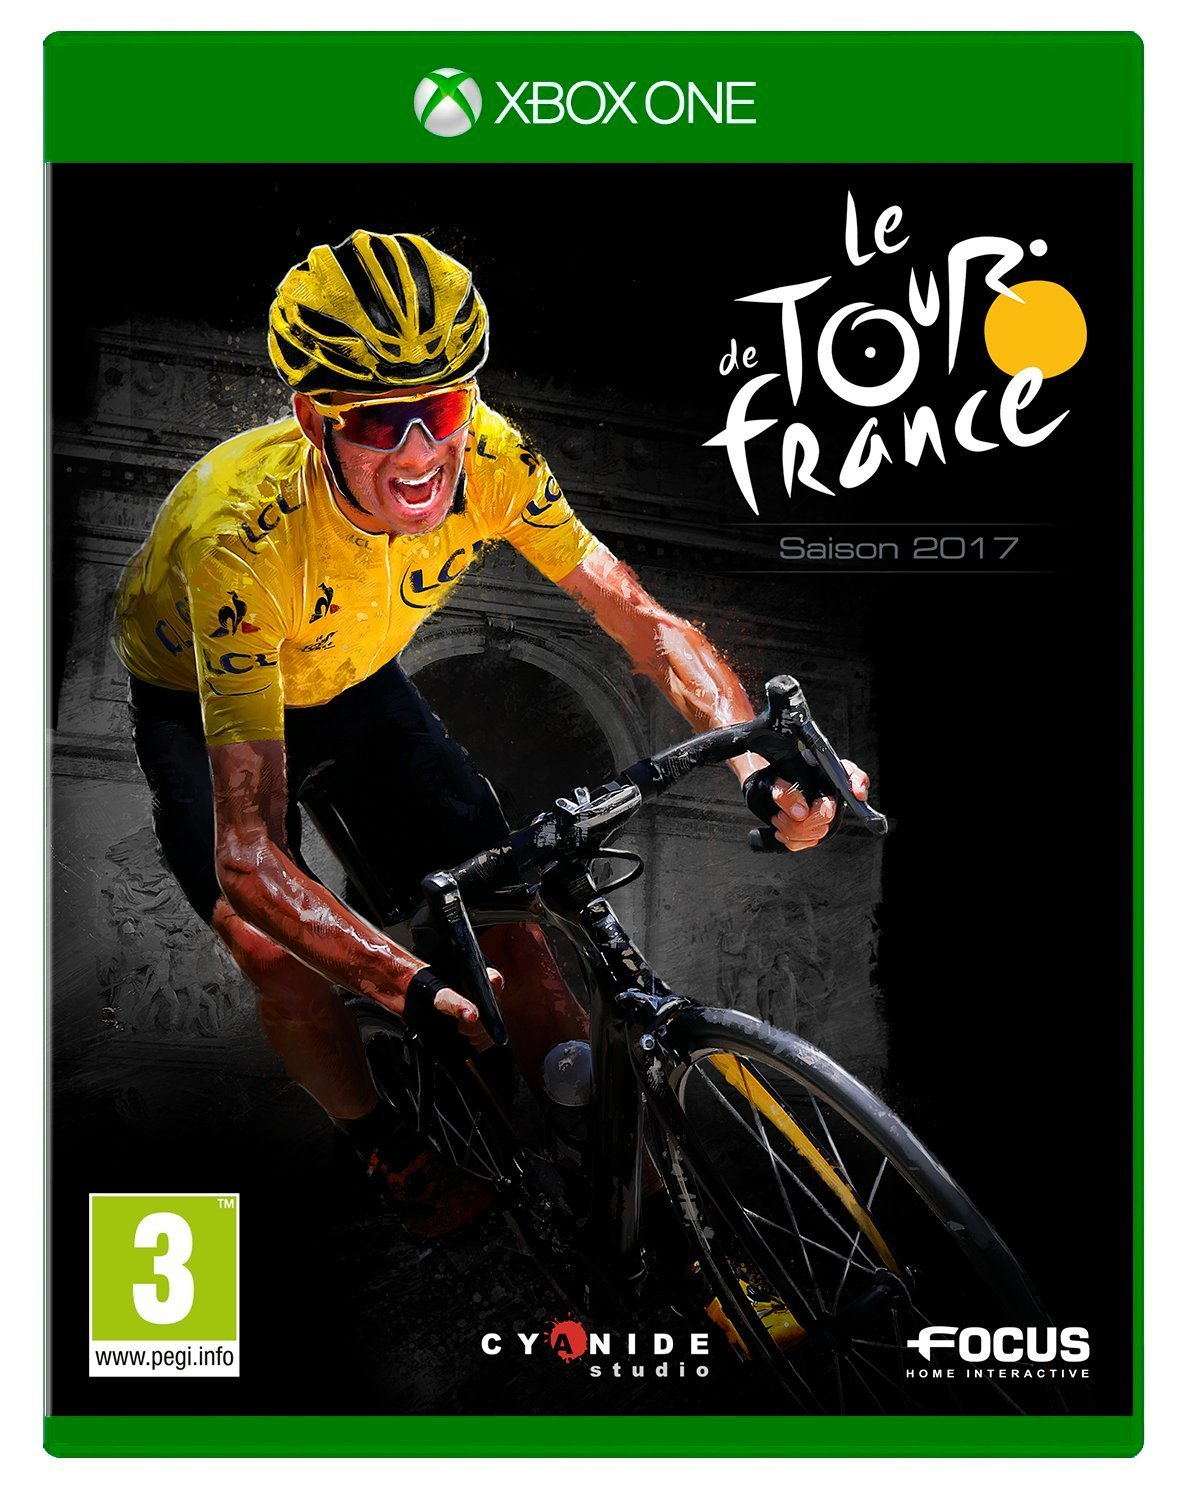 tour de france 2017 les nouveaut s des versions ps4 one et pc le mag jeux high tech. Black Bedroom Furniture Sets. Home Design Ideas